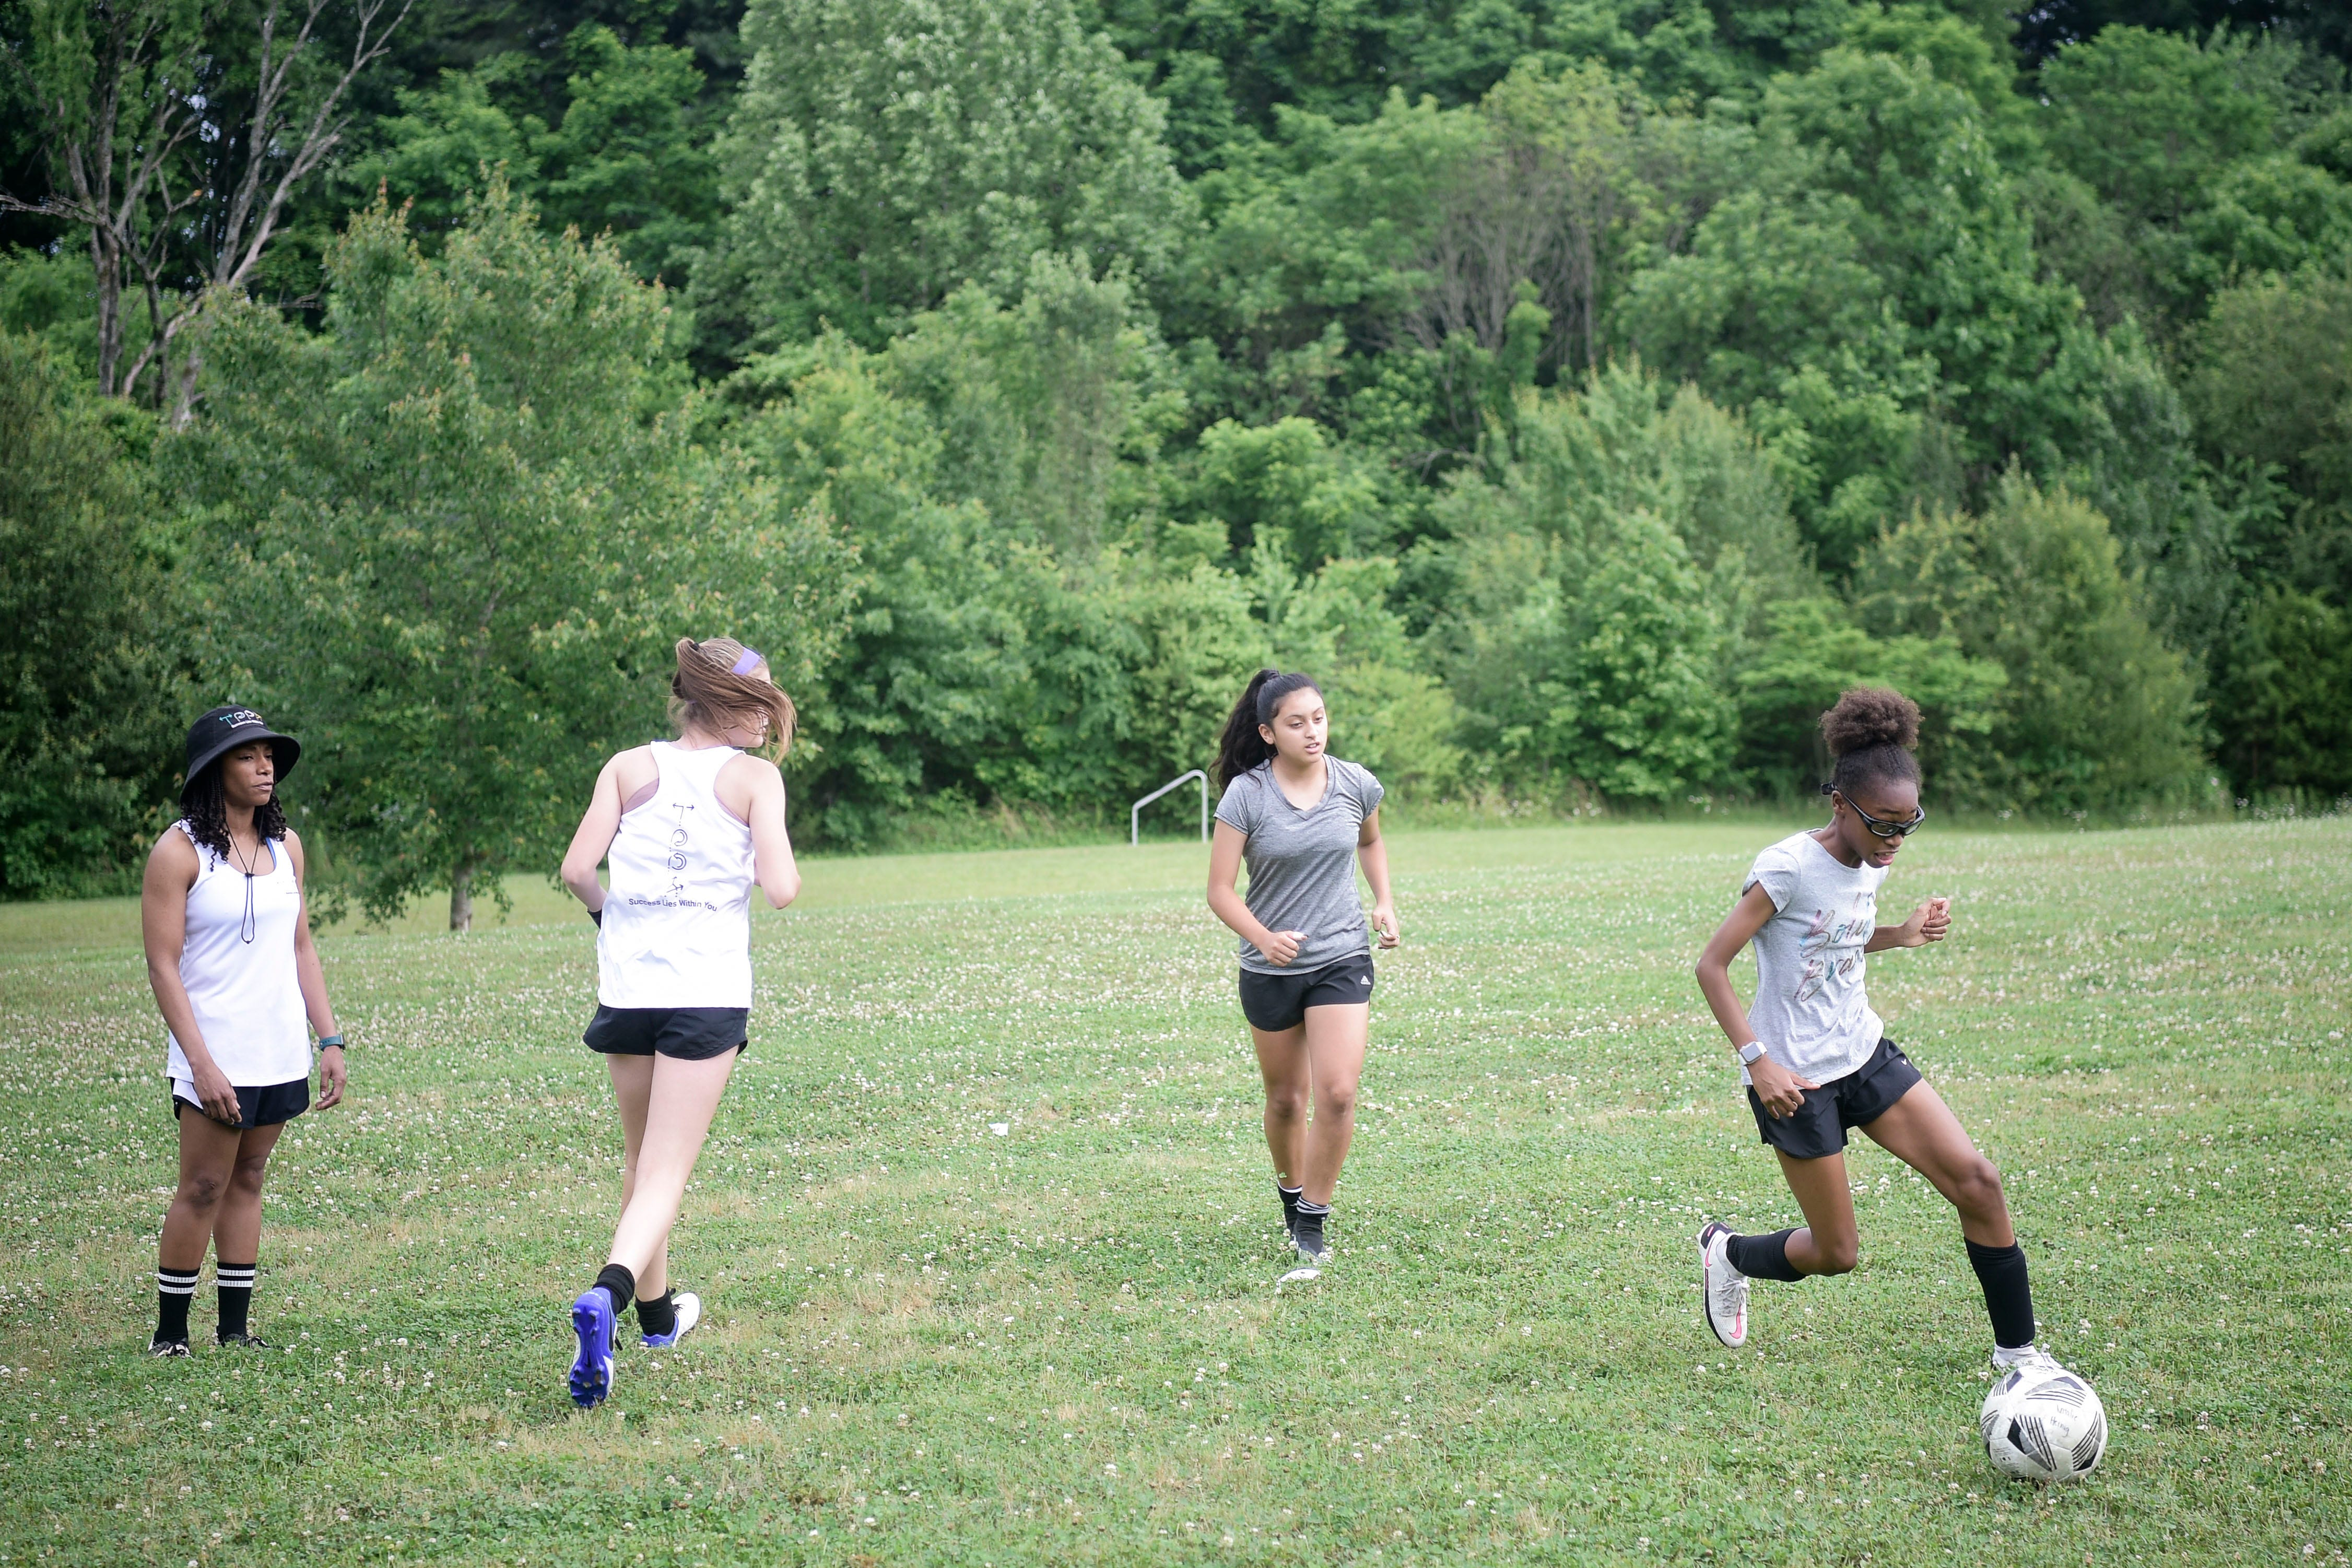 Madison Davis (far right) is not just learning how to play the game through Barrett; she is learning how to become a better teammate, her father said.